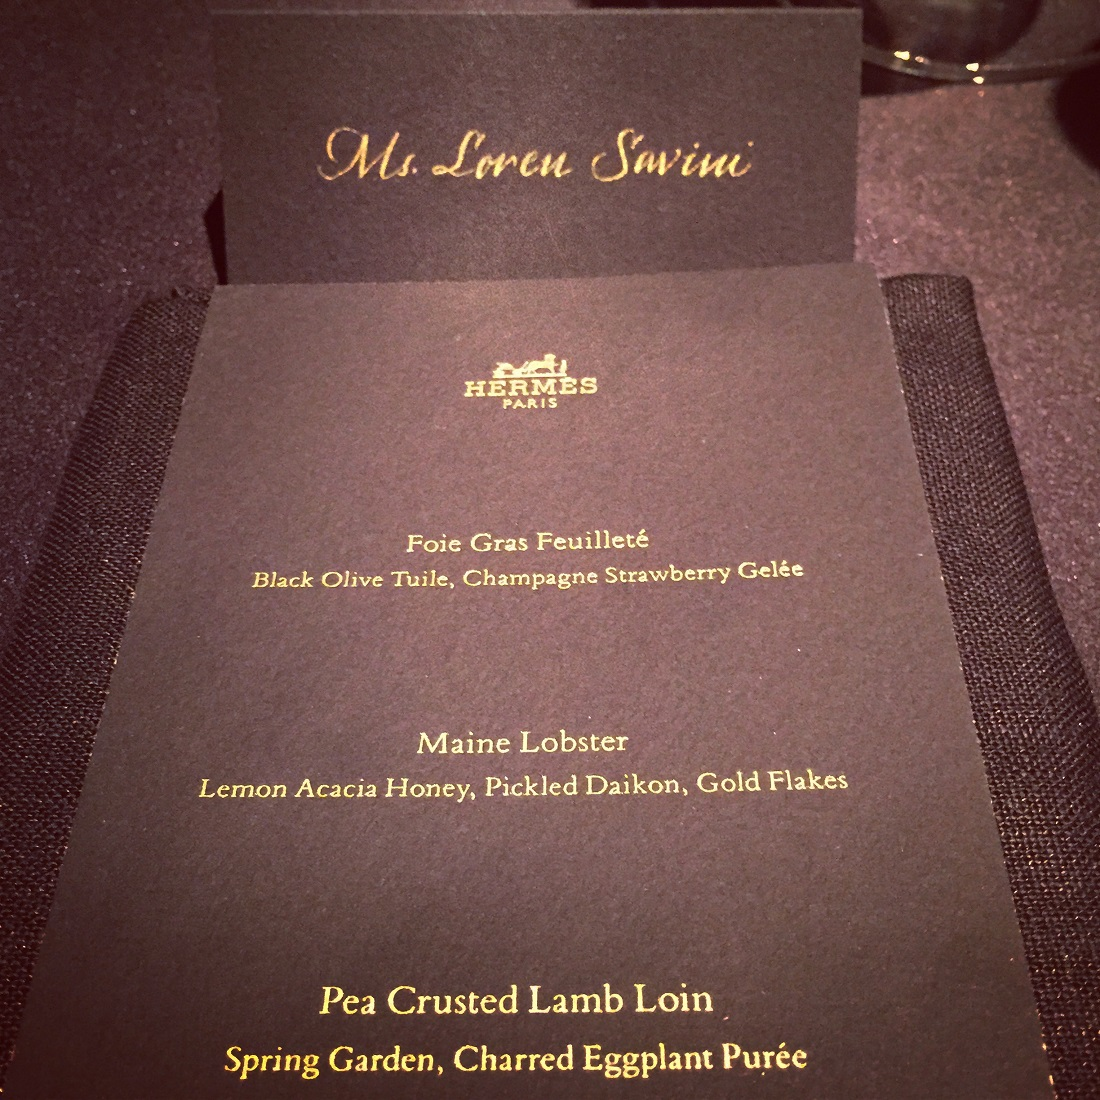 The menu for last night's exclusive dinner party.